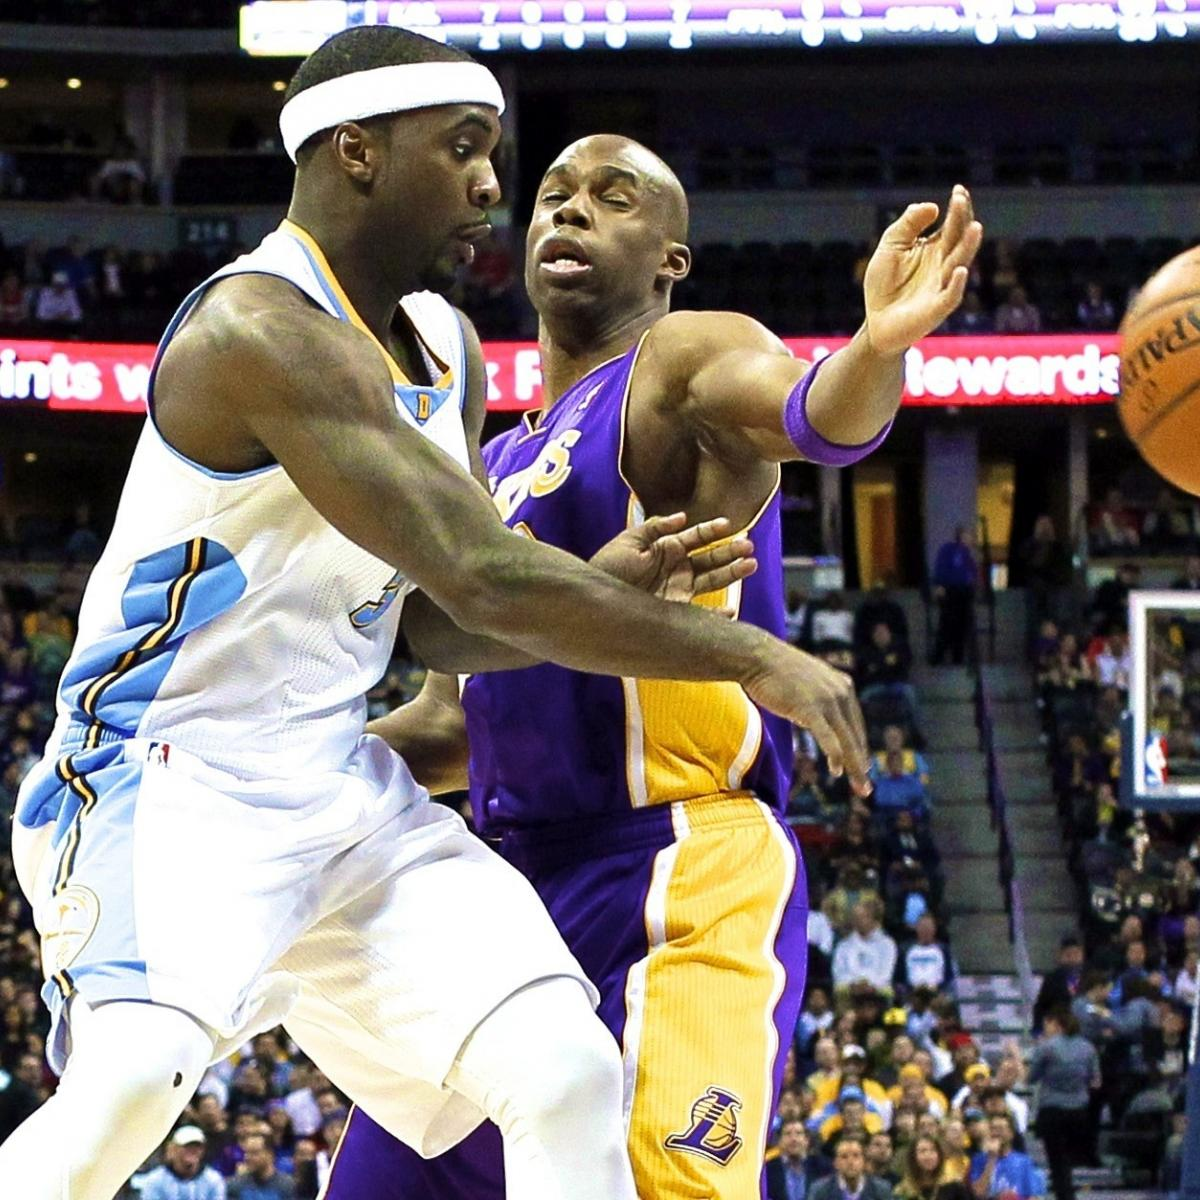 Los Angeles Lakers Vs. Denver Nuggets: Live Score And